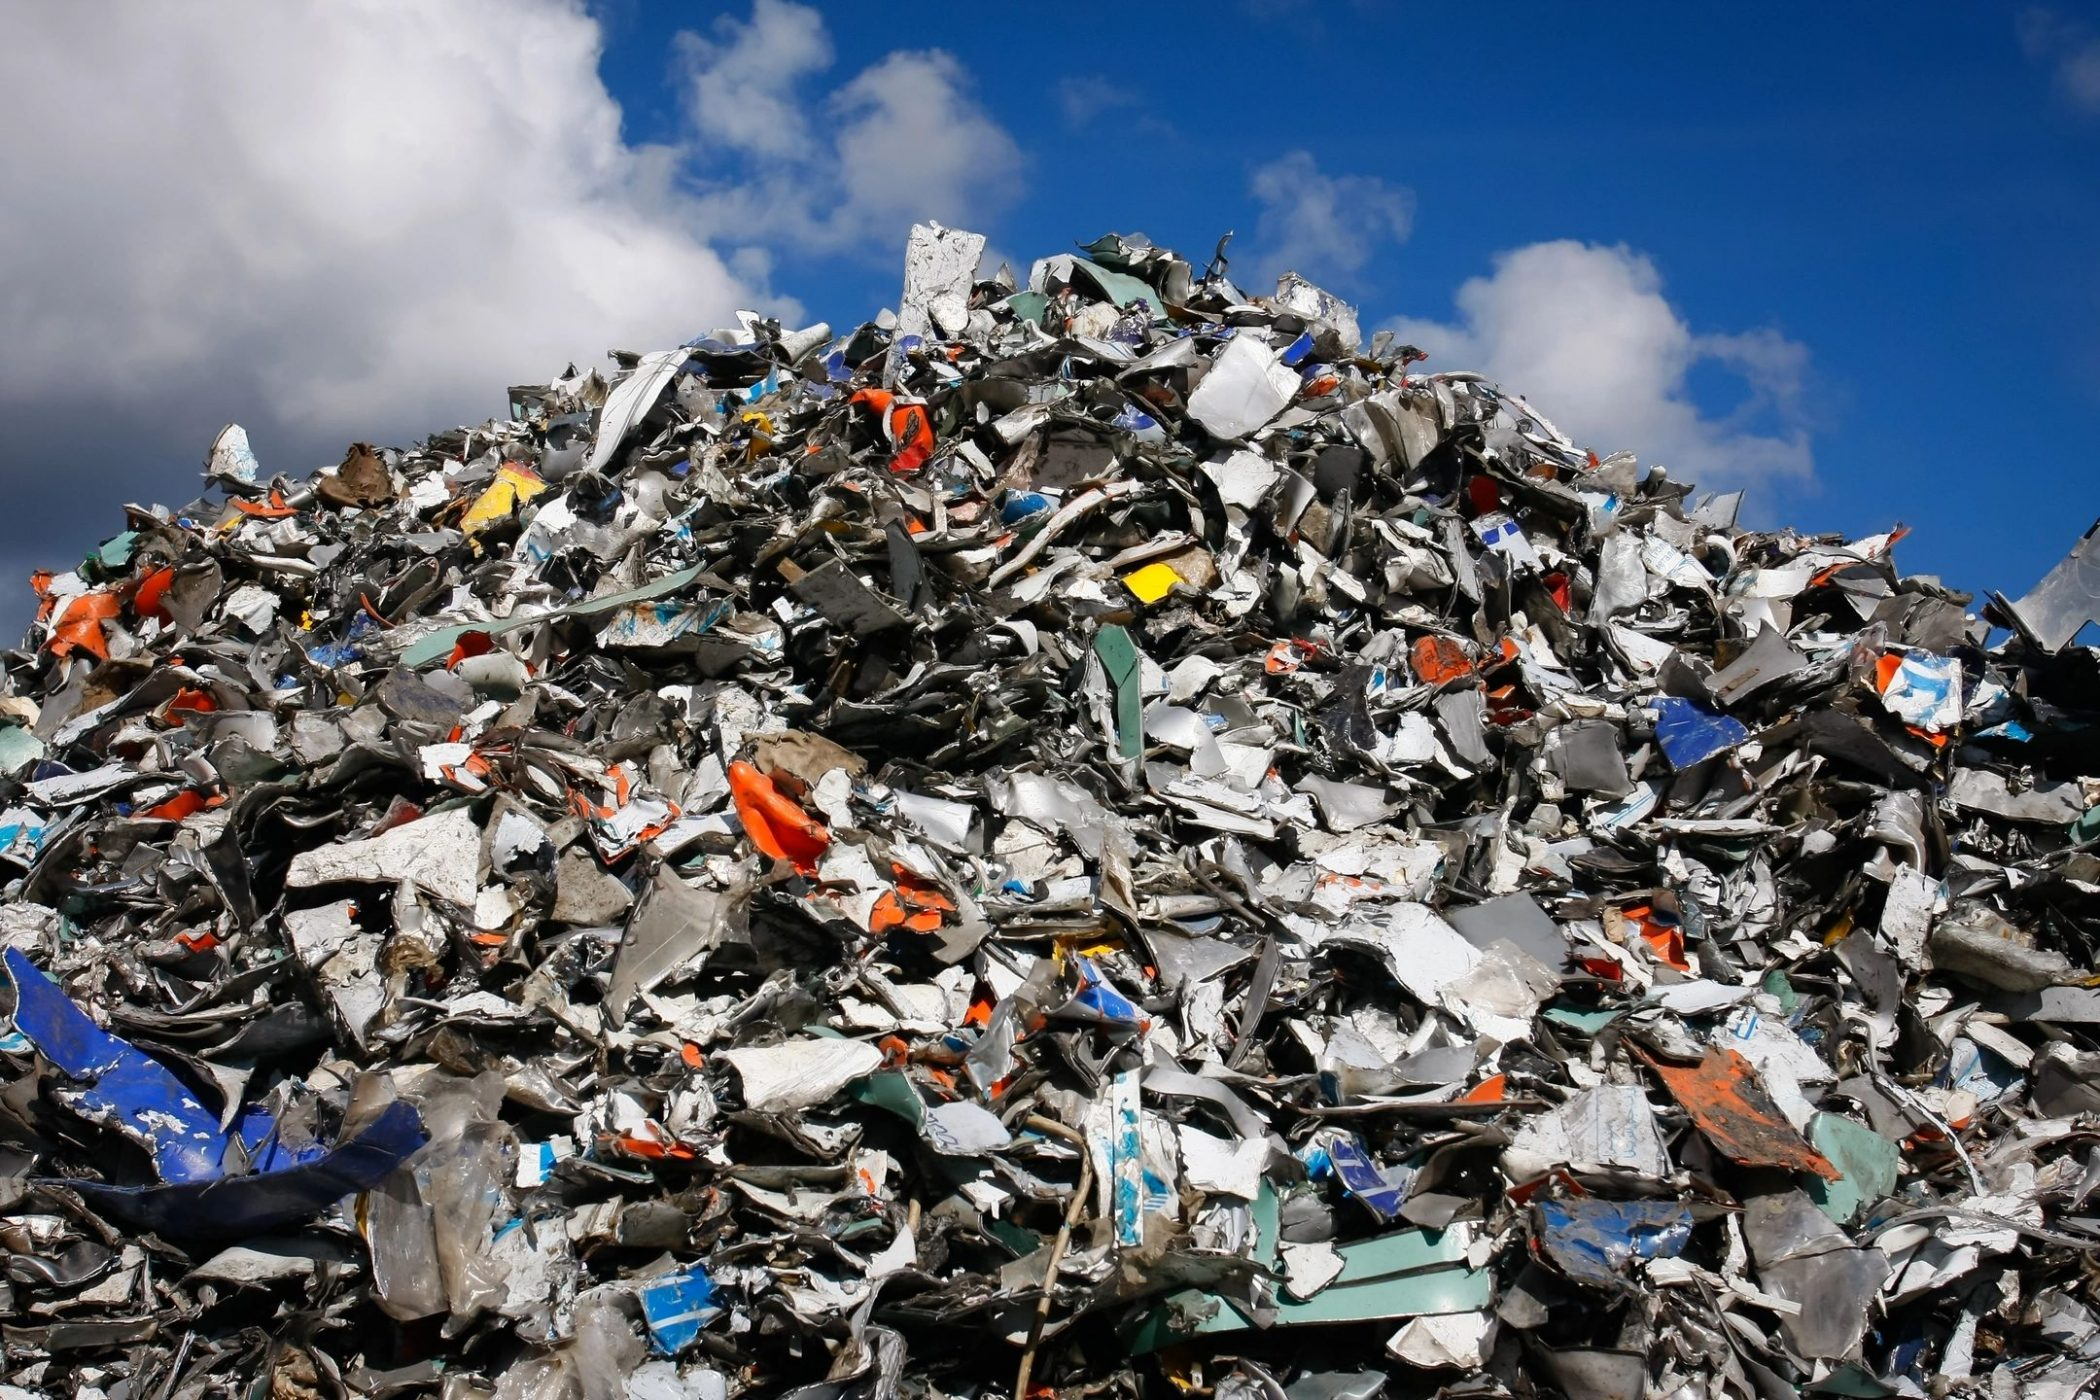 Pile of trash similar to that visited by DC widow blog writer Marjorie Brimley